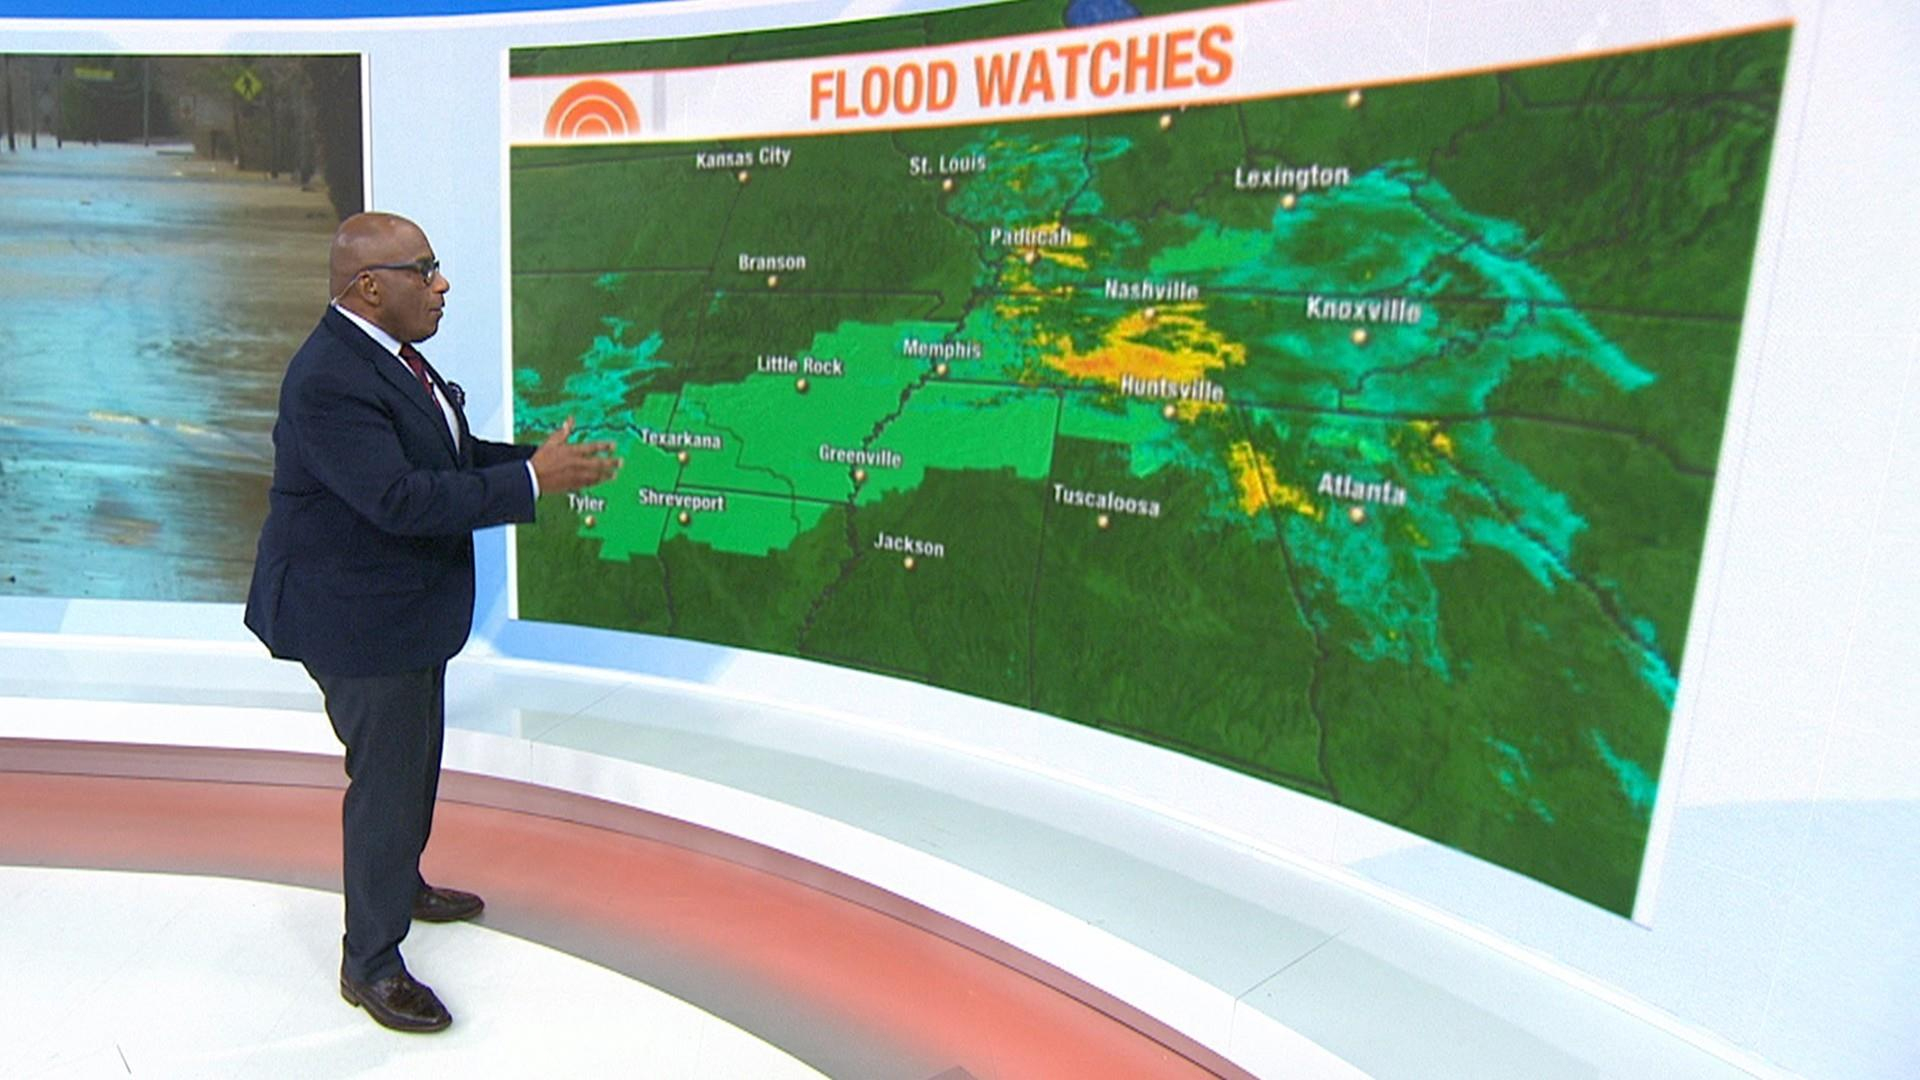 Millions Are Under Flash Flood Warnings Across Midwest - Nbc News - Venice Florida Flood Map